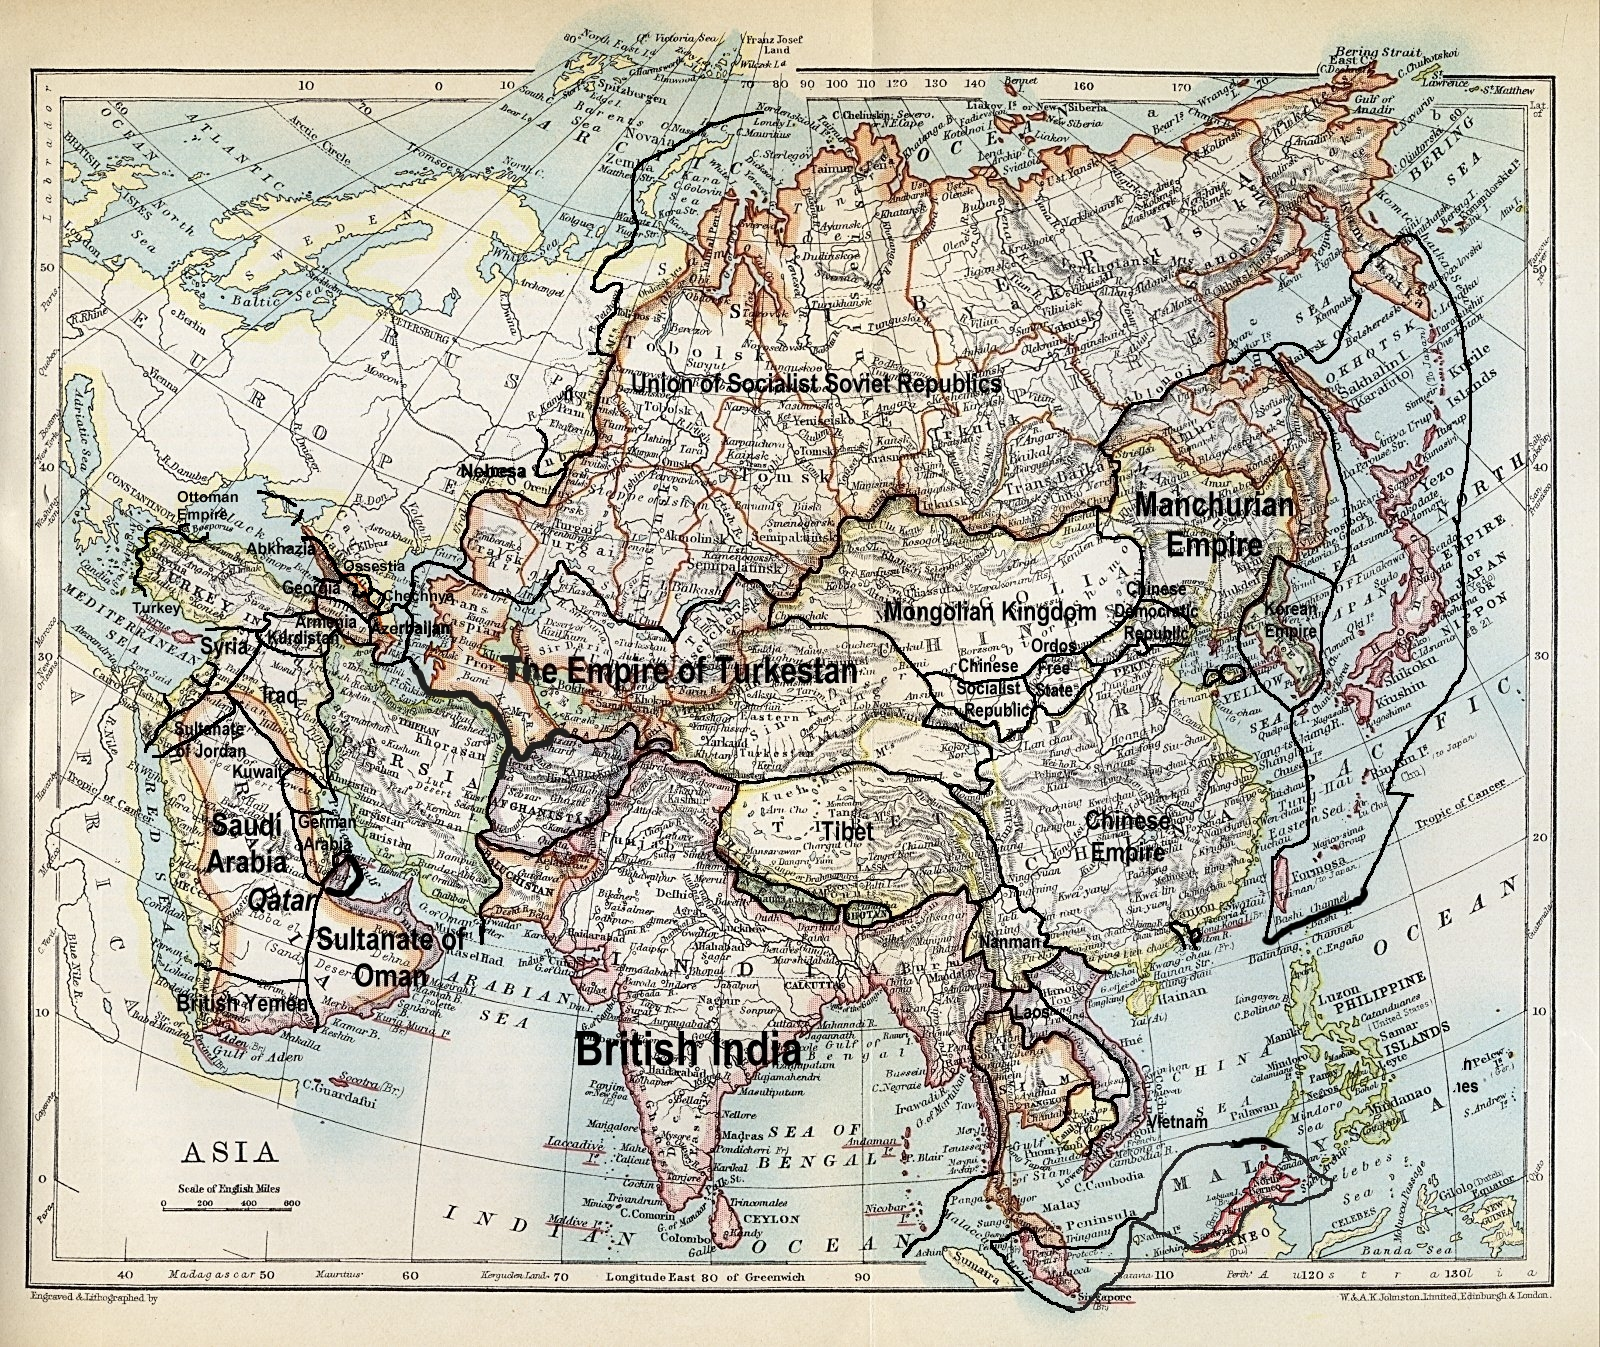 Image map of asia 1915g alternative history fandom powered map of asia 1915g gumiabroncs Image collections